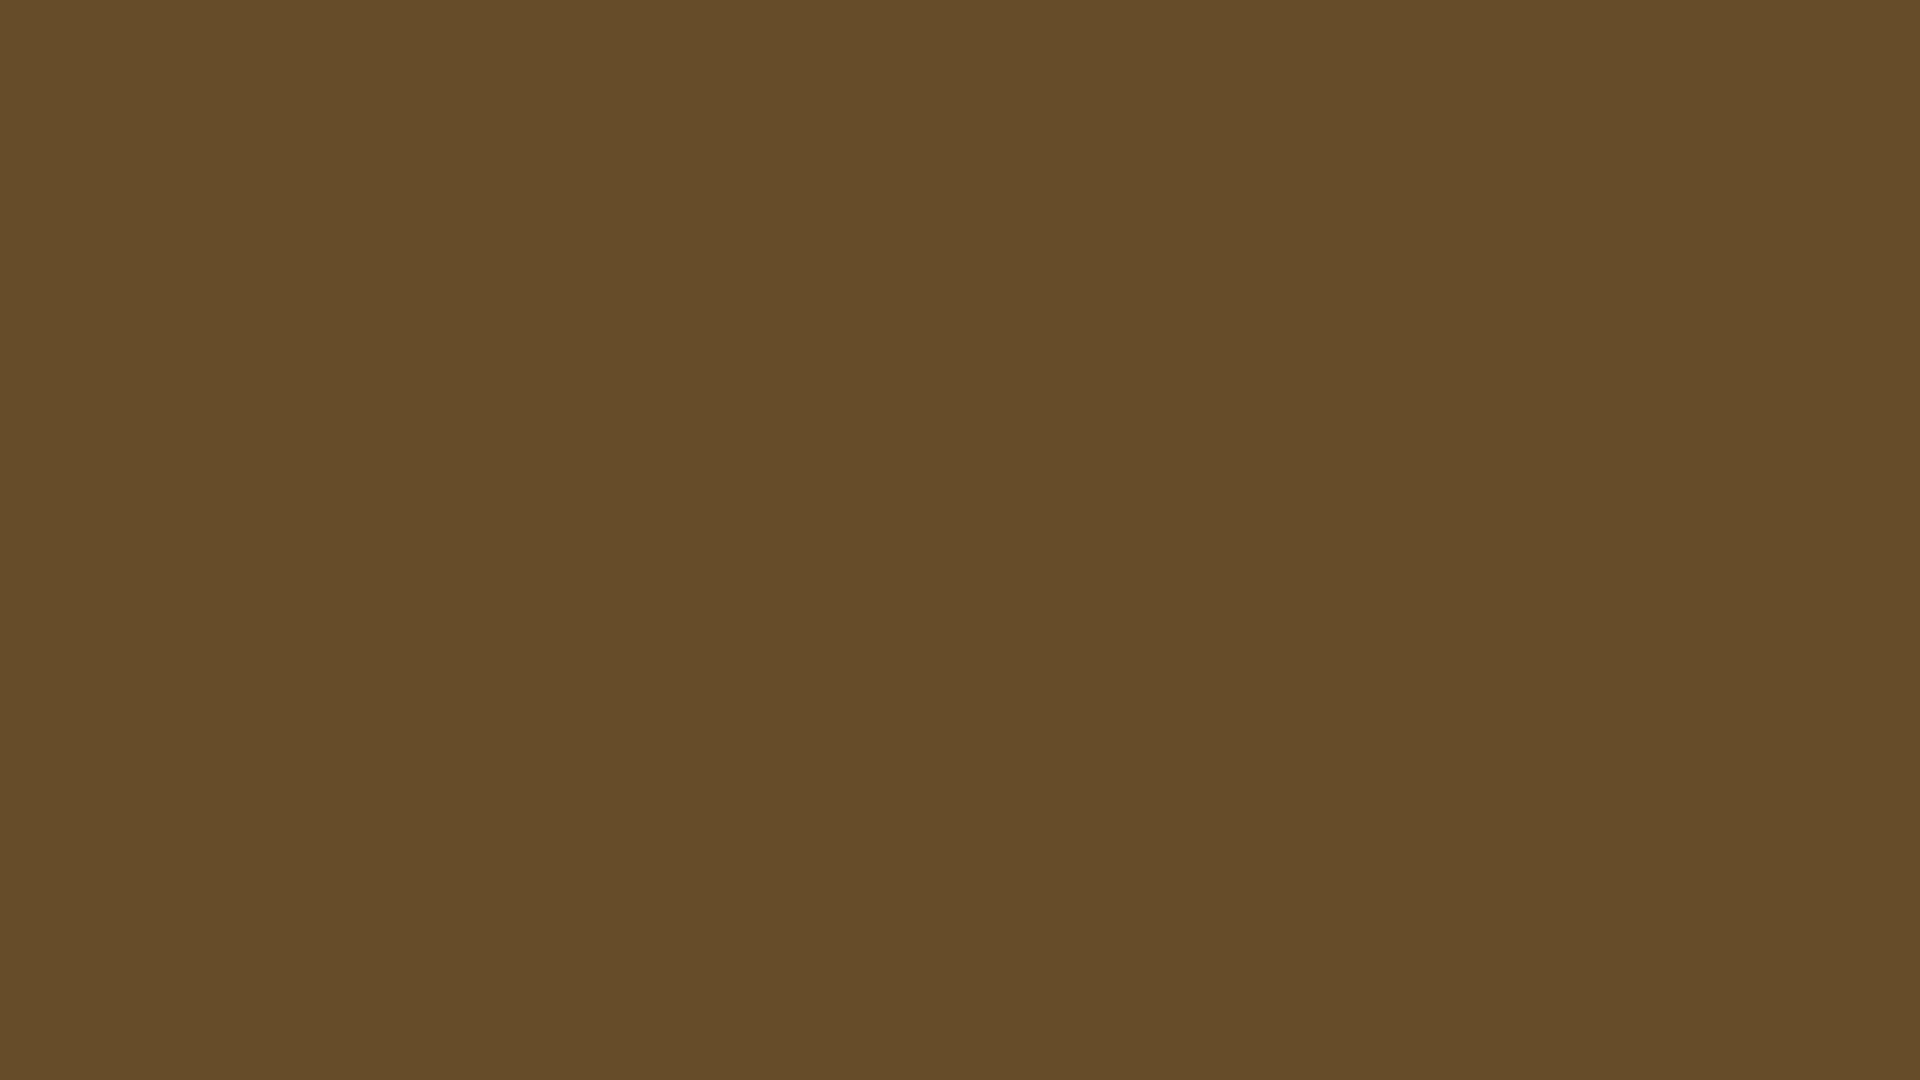 1920x1080 Donkey Brown Solid Color Background 1920x1080